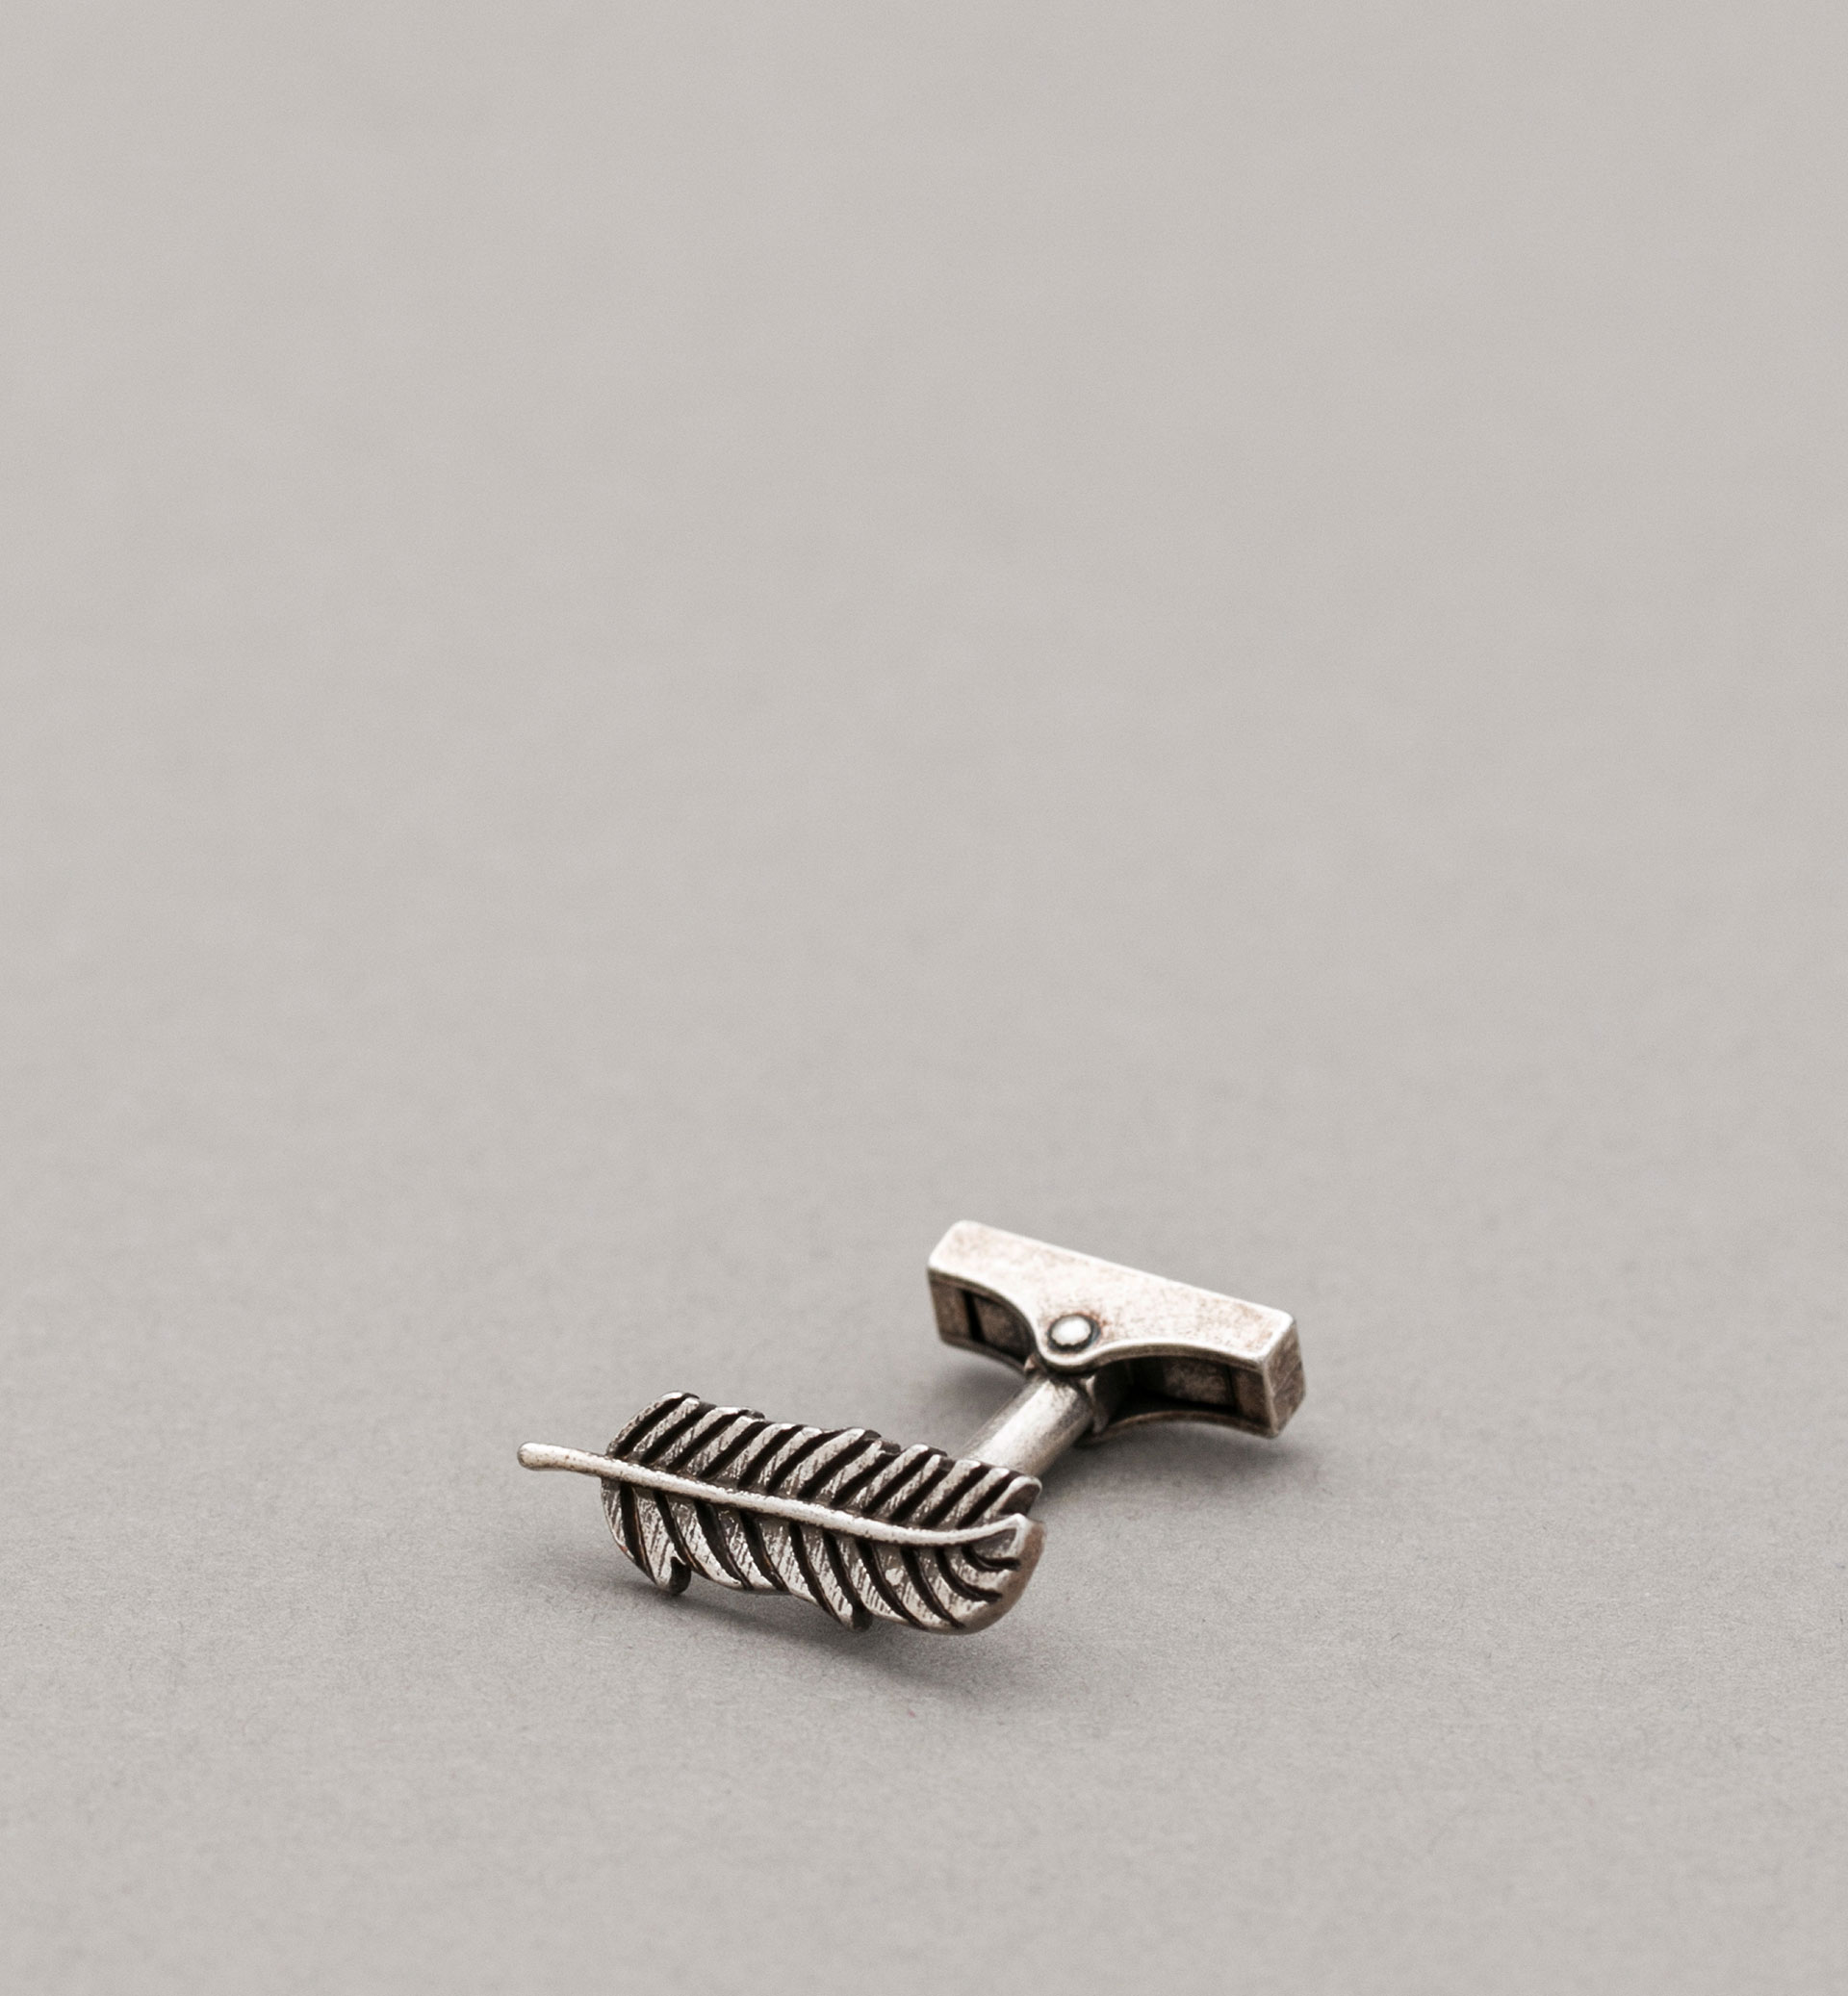 PERSONAL TAILORING FEATHER CUFFLINKS